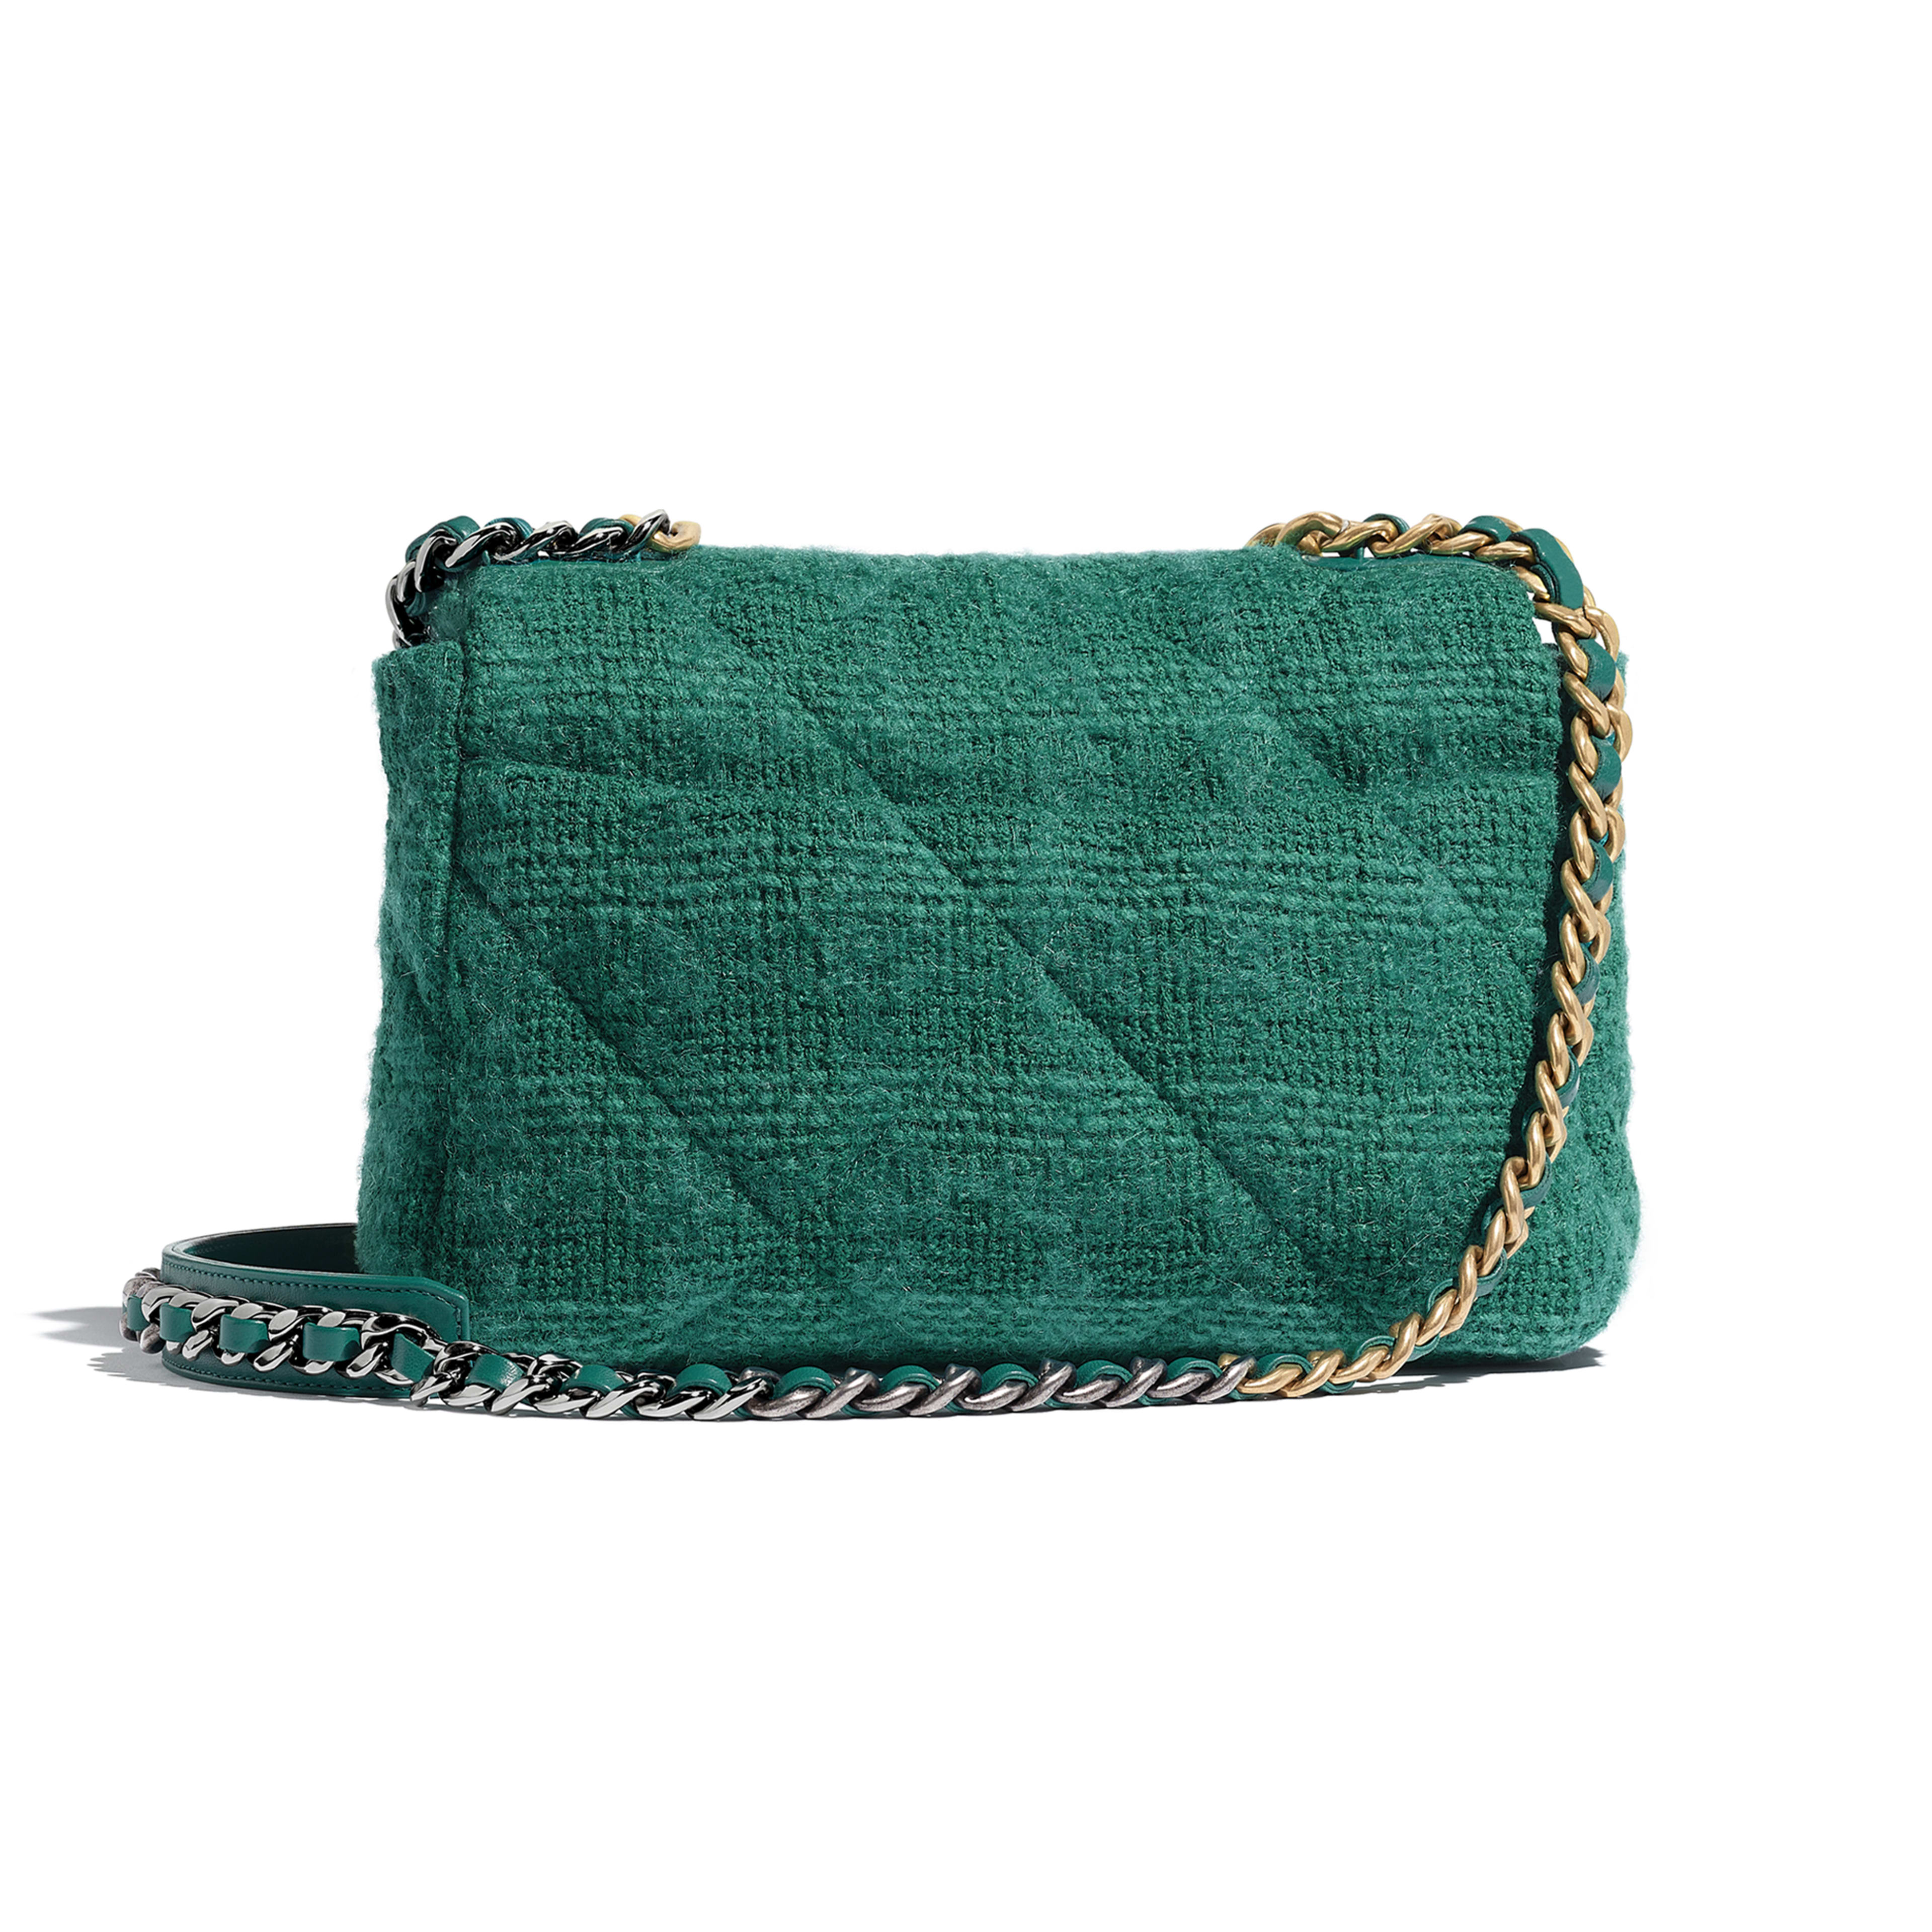 CHANEL 19 Flap Bag - Green - Wool Tweed, Gold-Tone, Silver-Tone & Ruthenium-Finish Metal - Alternative view - see full sized version